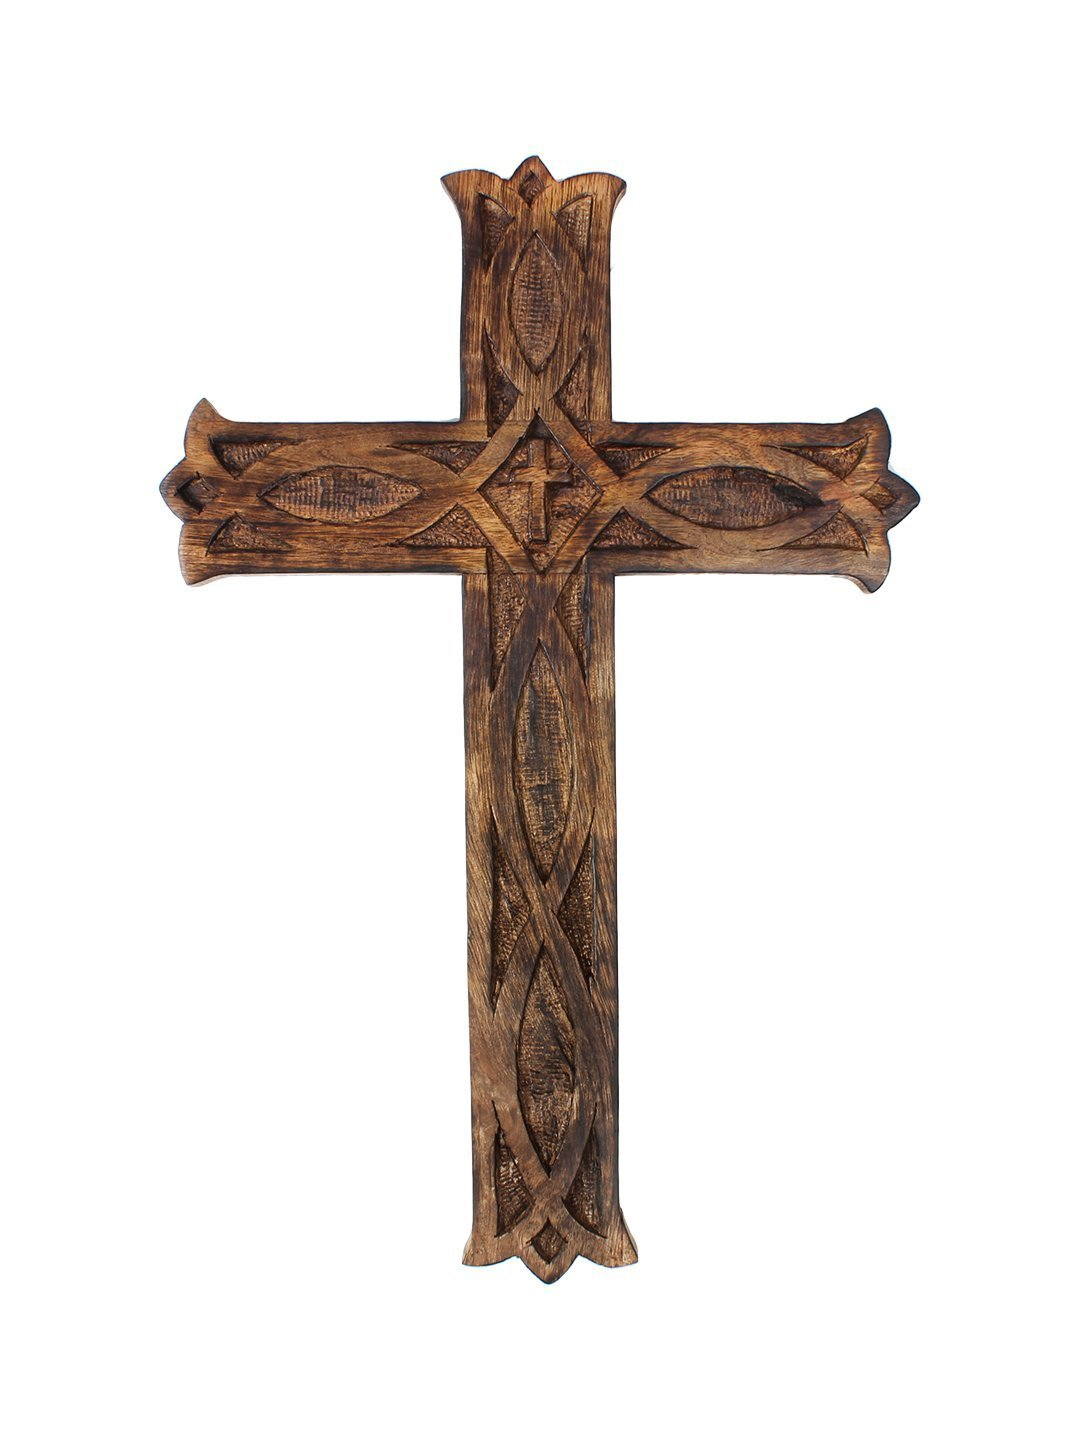 Shop amazon wall crosses decorative wall cross wooden french handmade plaque religious altar home living room home decor accessory amipublicfo Gallery